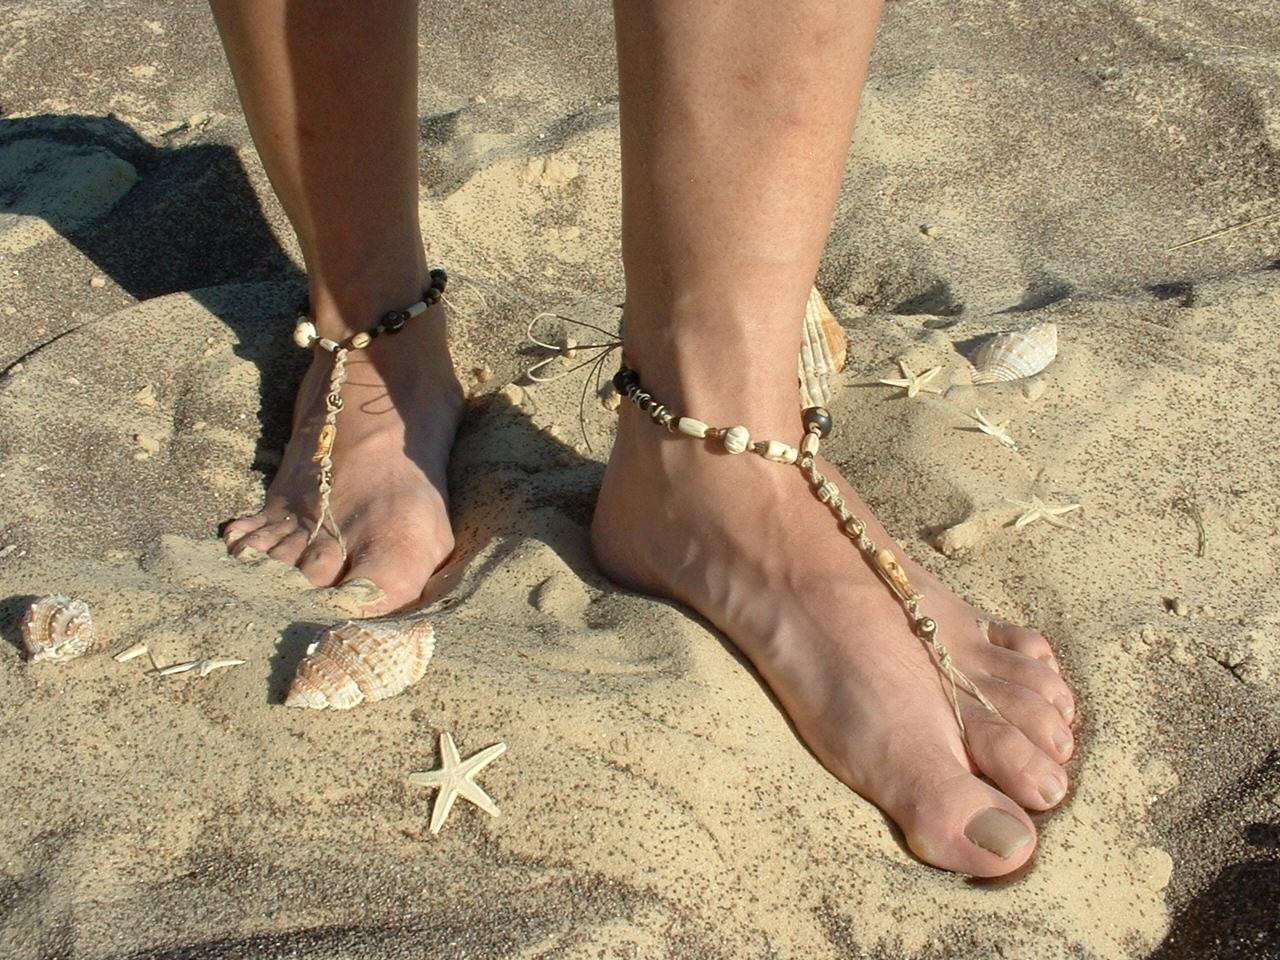 Bottomless Beaches http://www.etsy.com/listing/97807031/mens-jewelry-hemp-barefoot-sandals